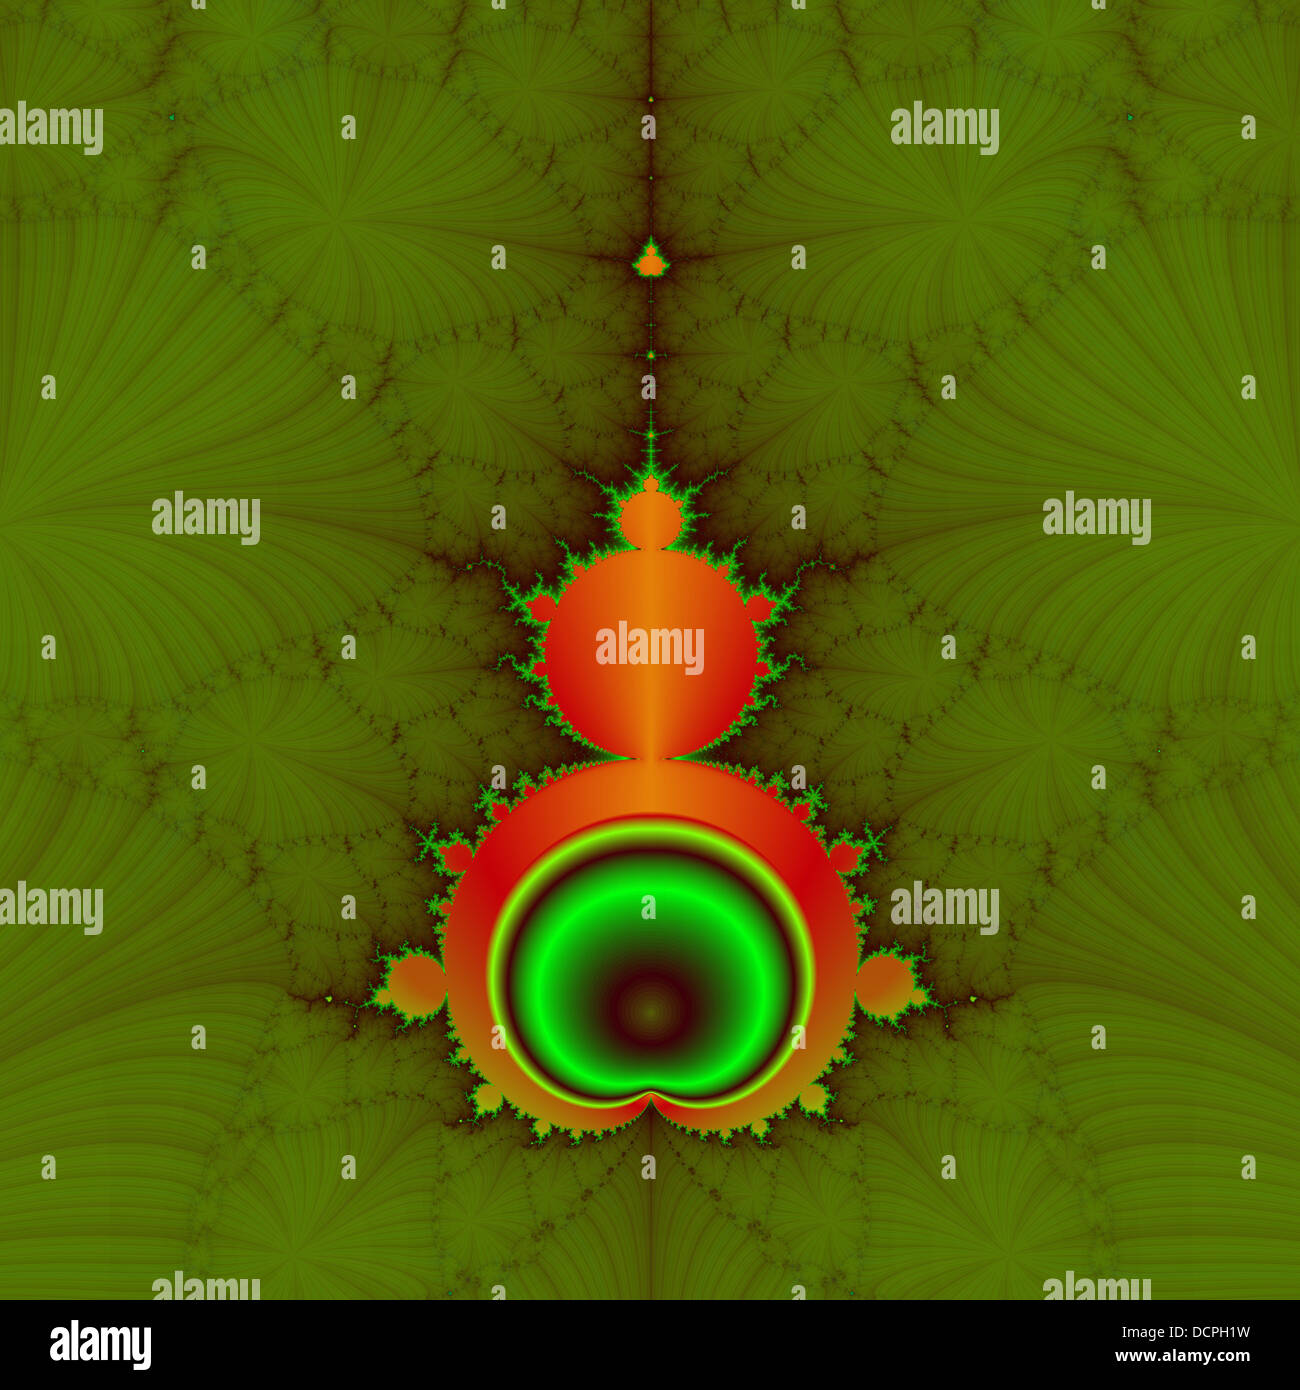 Classic Mandelbrot fractal in orange and green on a green background. - Stock Image